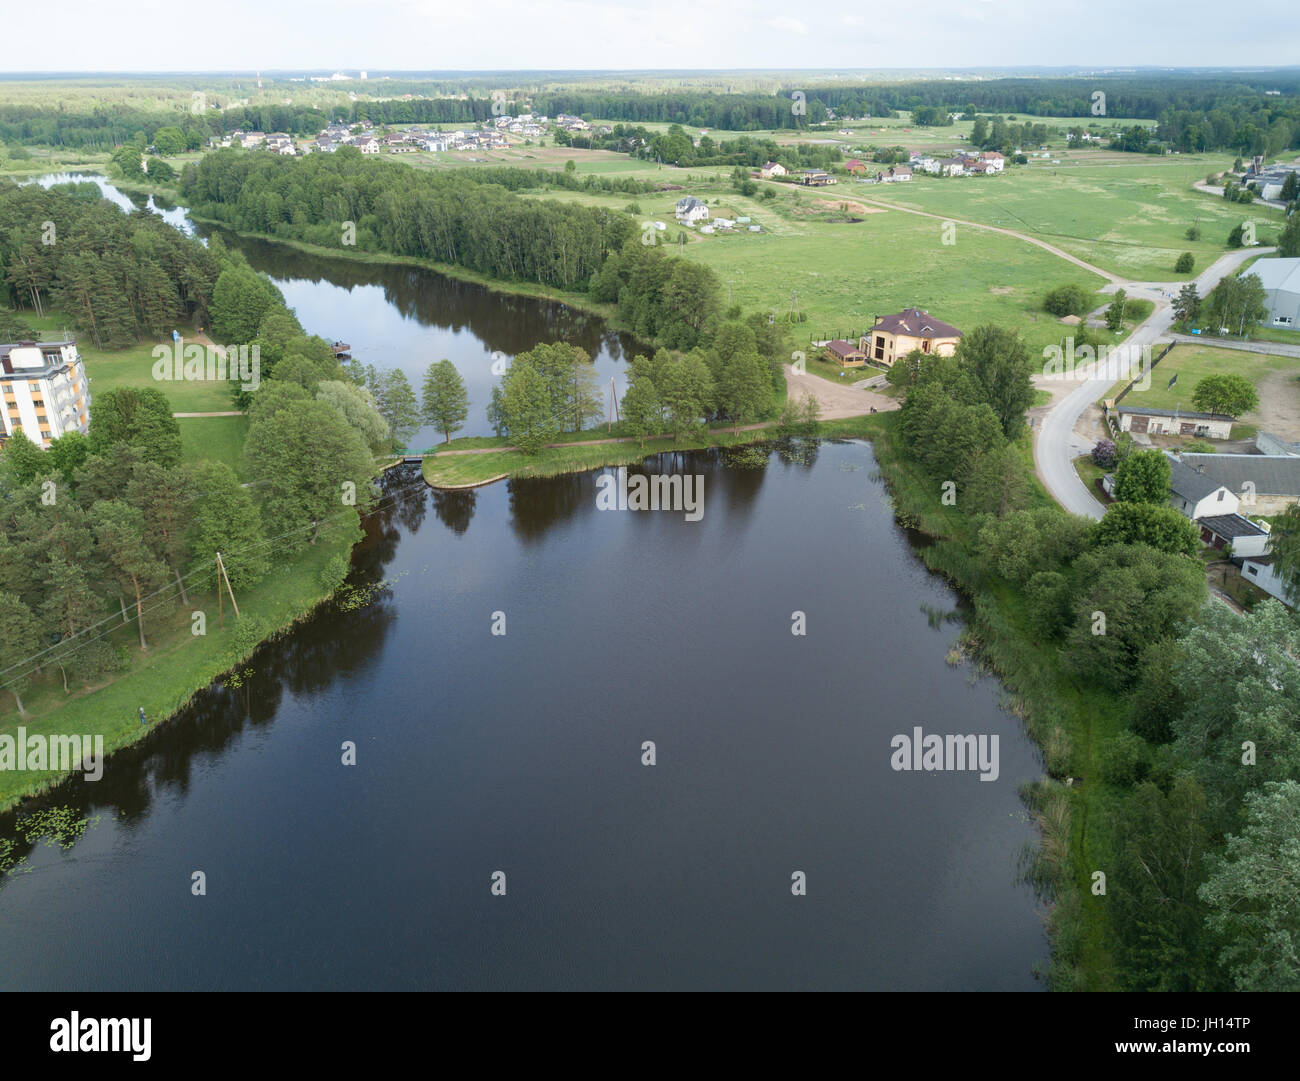 evening dusk sunset Aerial view of countryside, drone top view - Stock Image